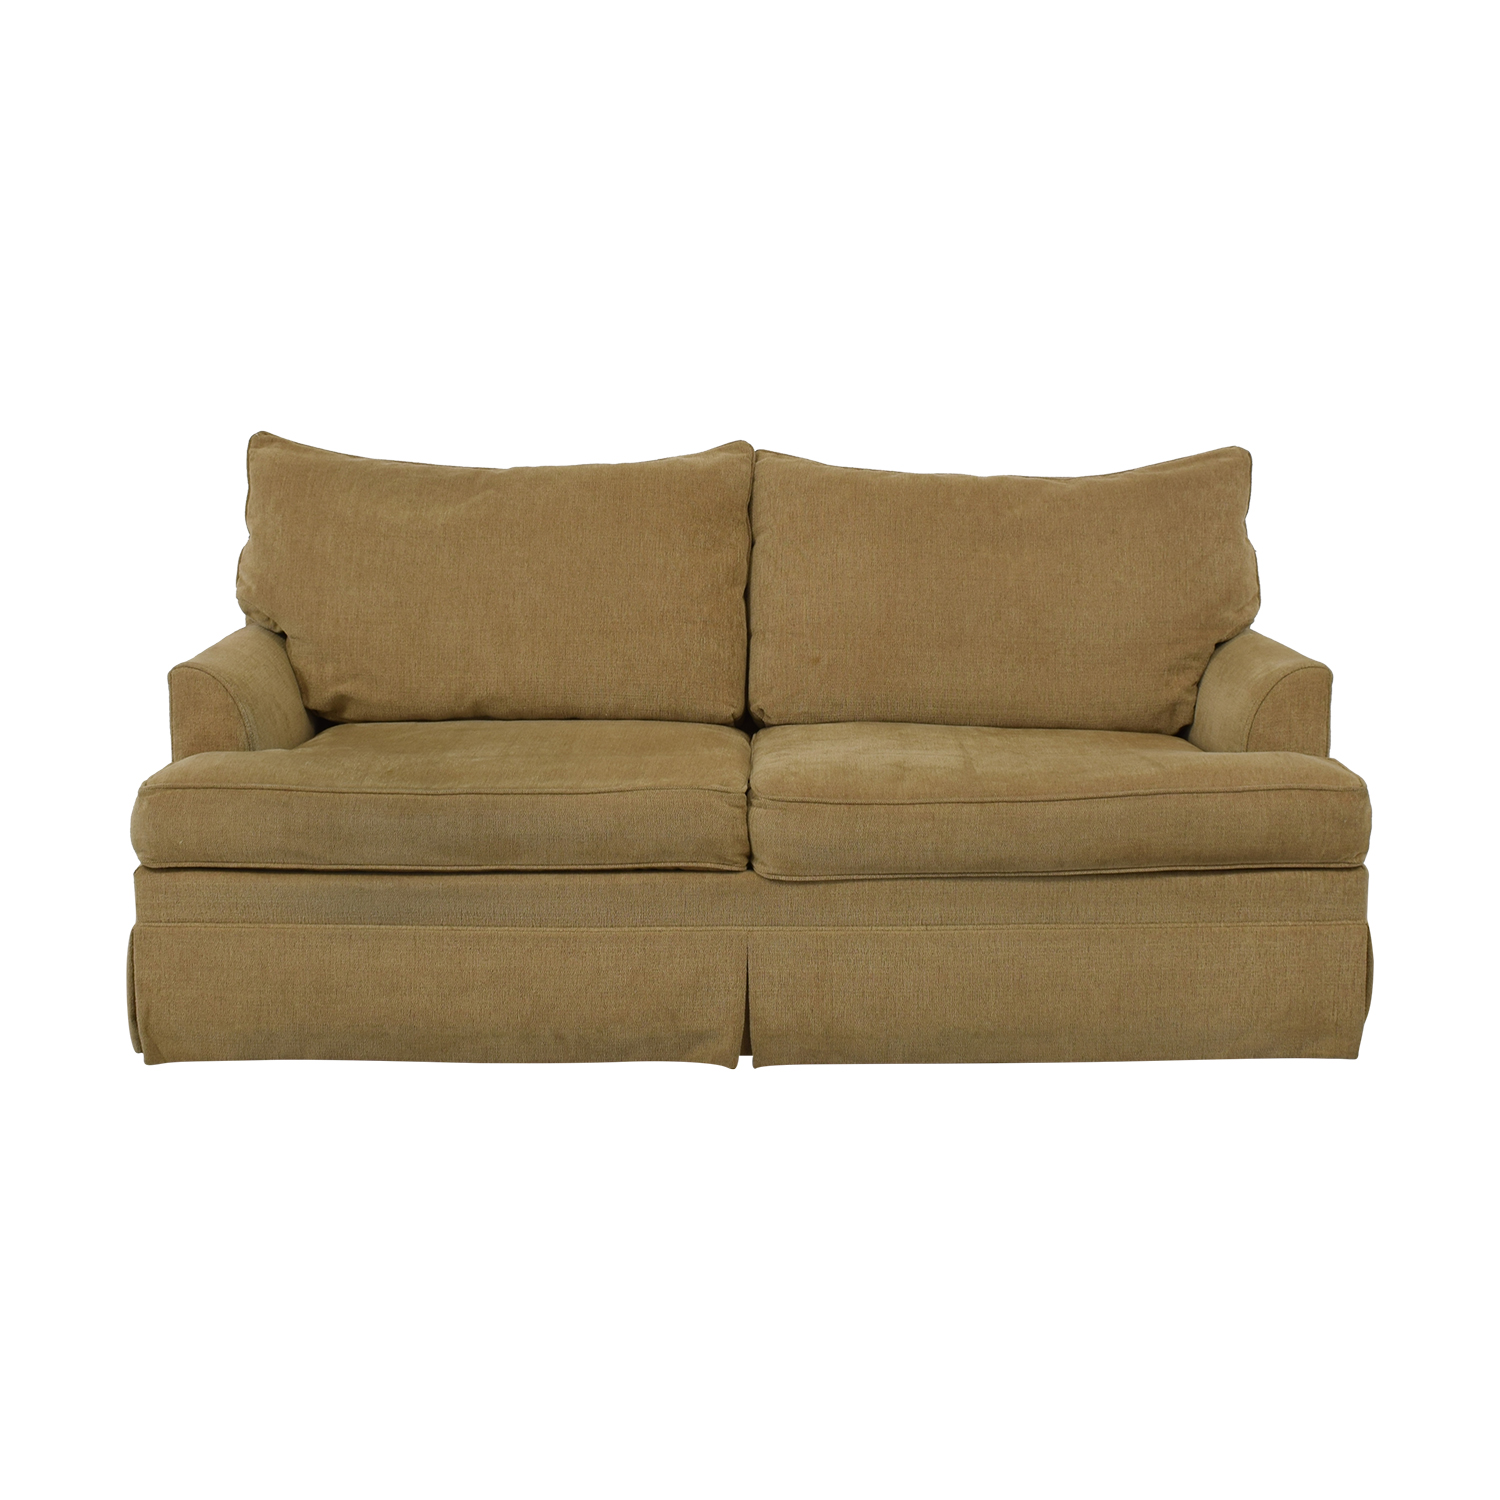 Ethan Allen Ethan Allen Two Cushion Sofa for sale